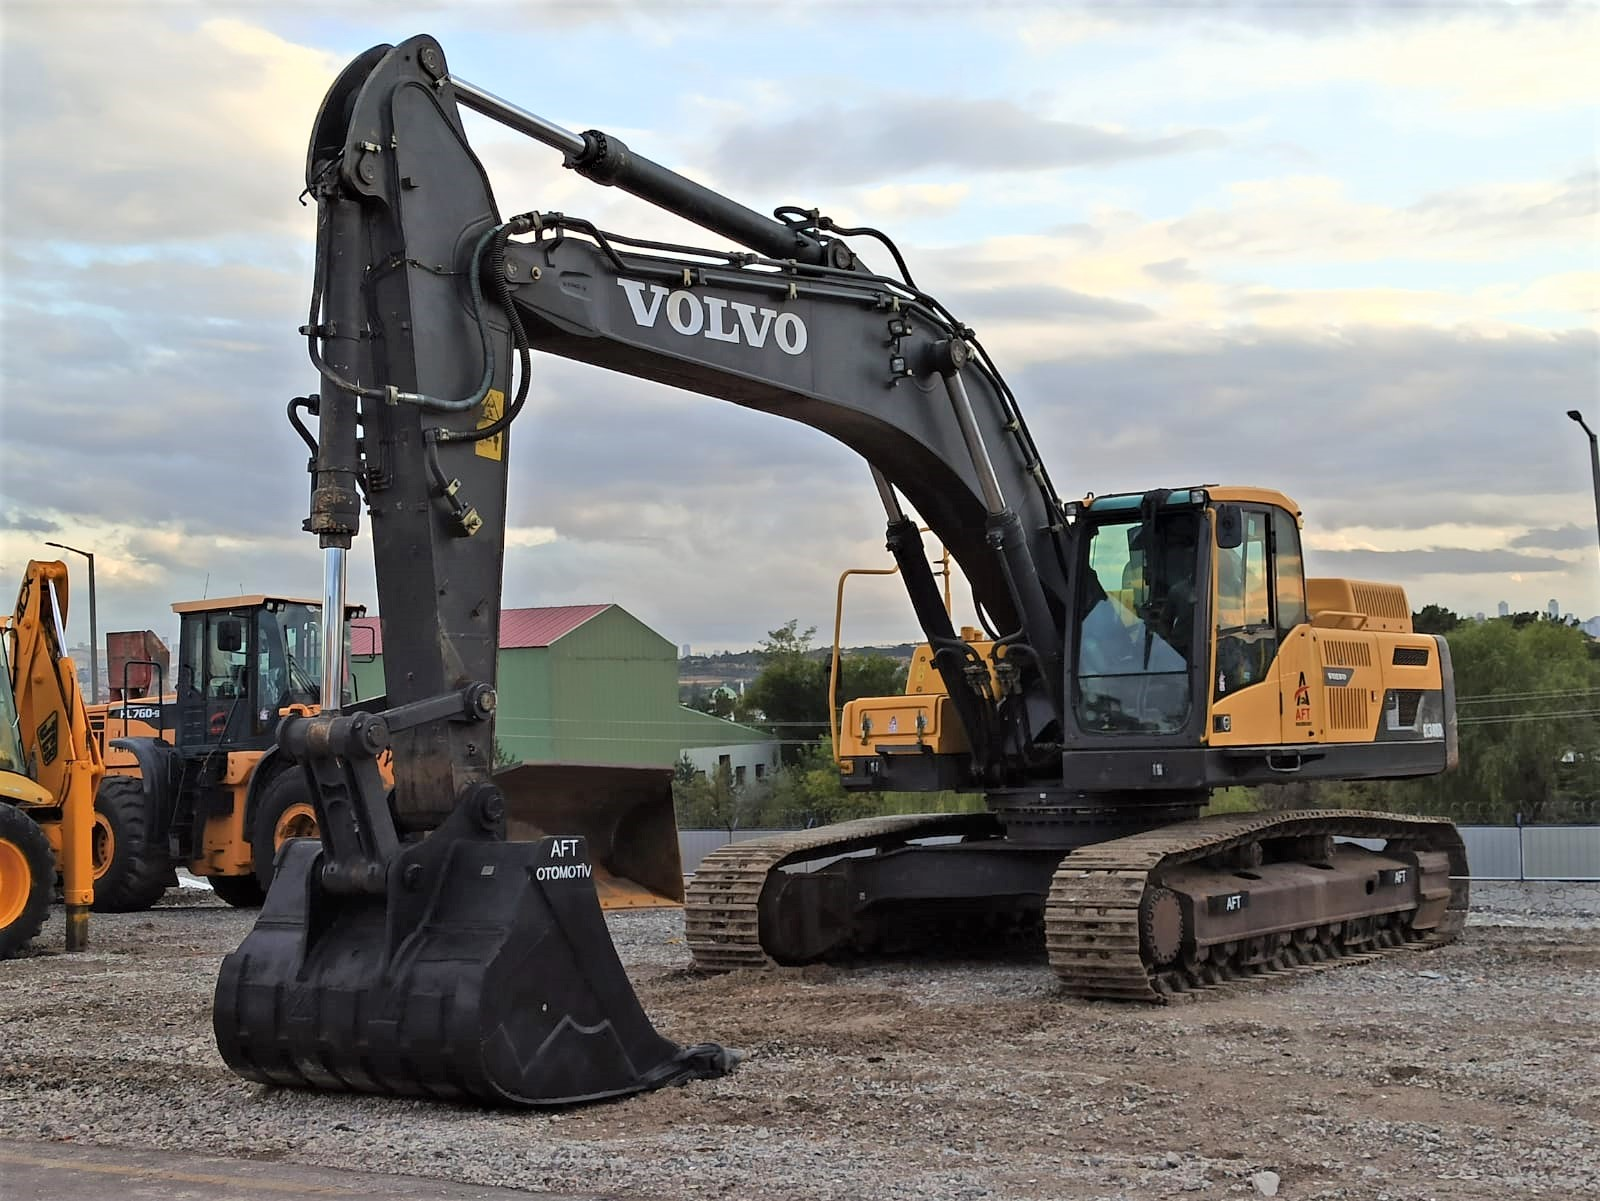 2014 MODEL VOLVO EC380 DL EXCAVATOR